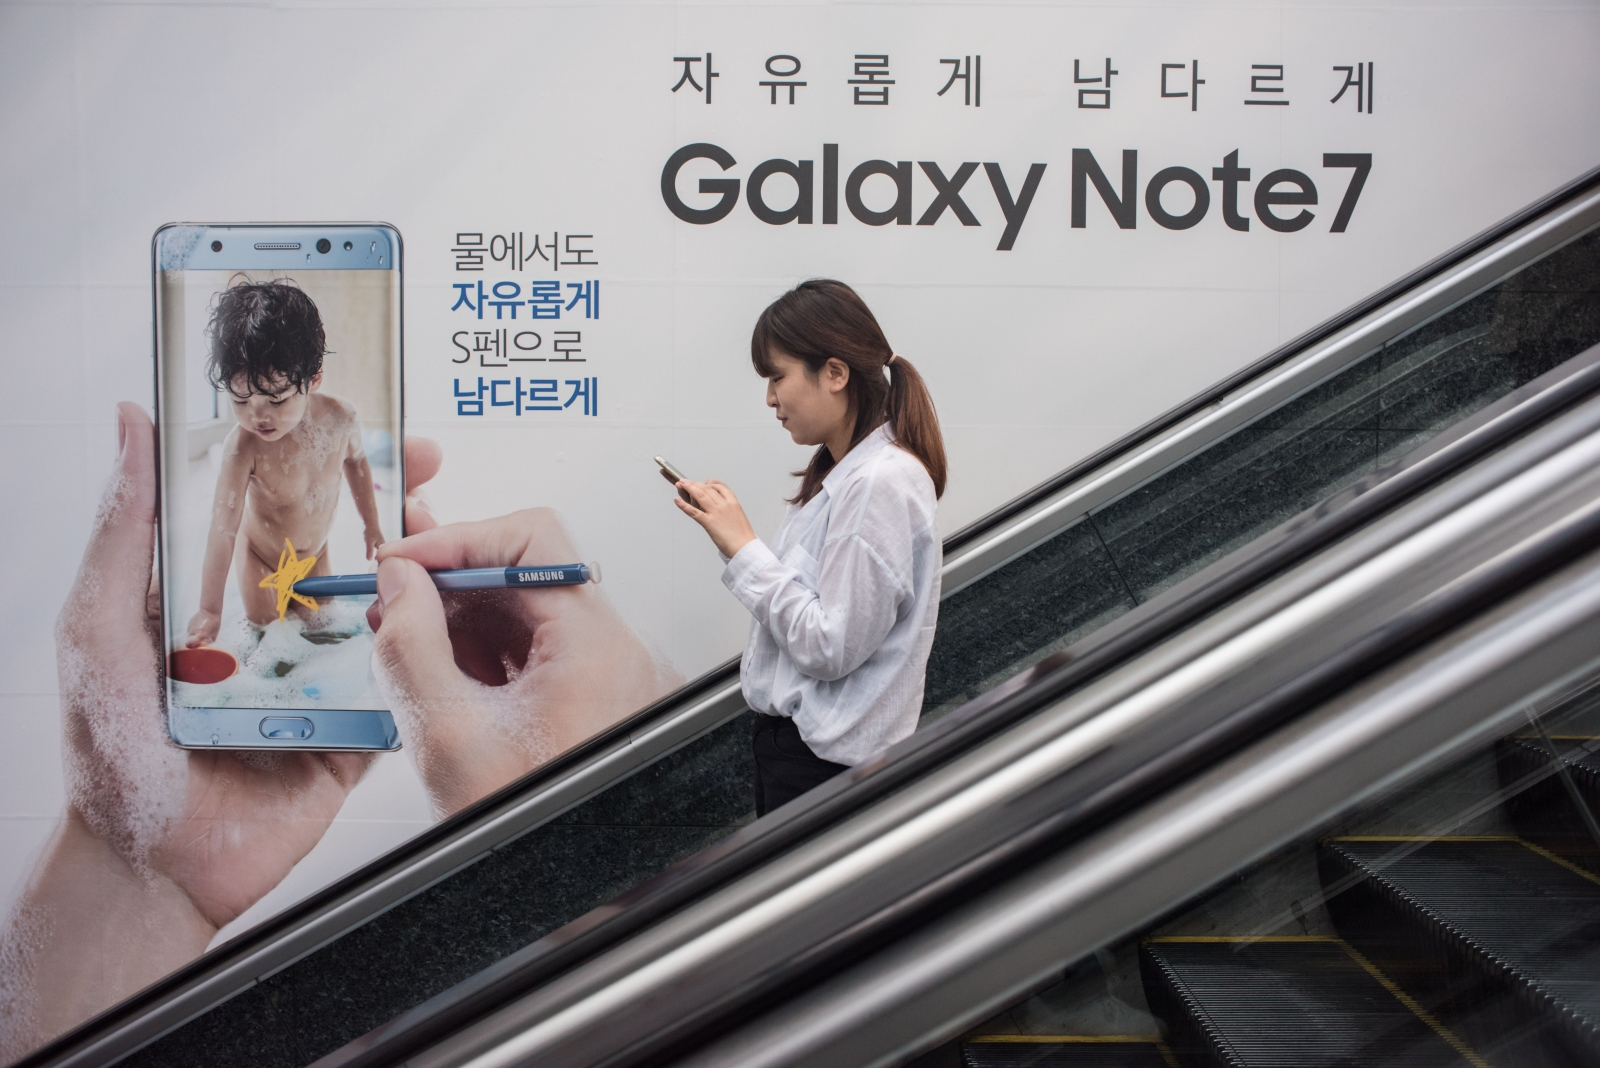 Refurbished Galaxy Note 7 coming to Korea